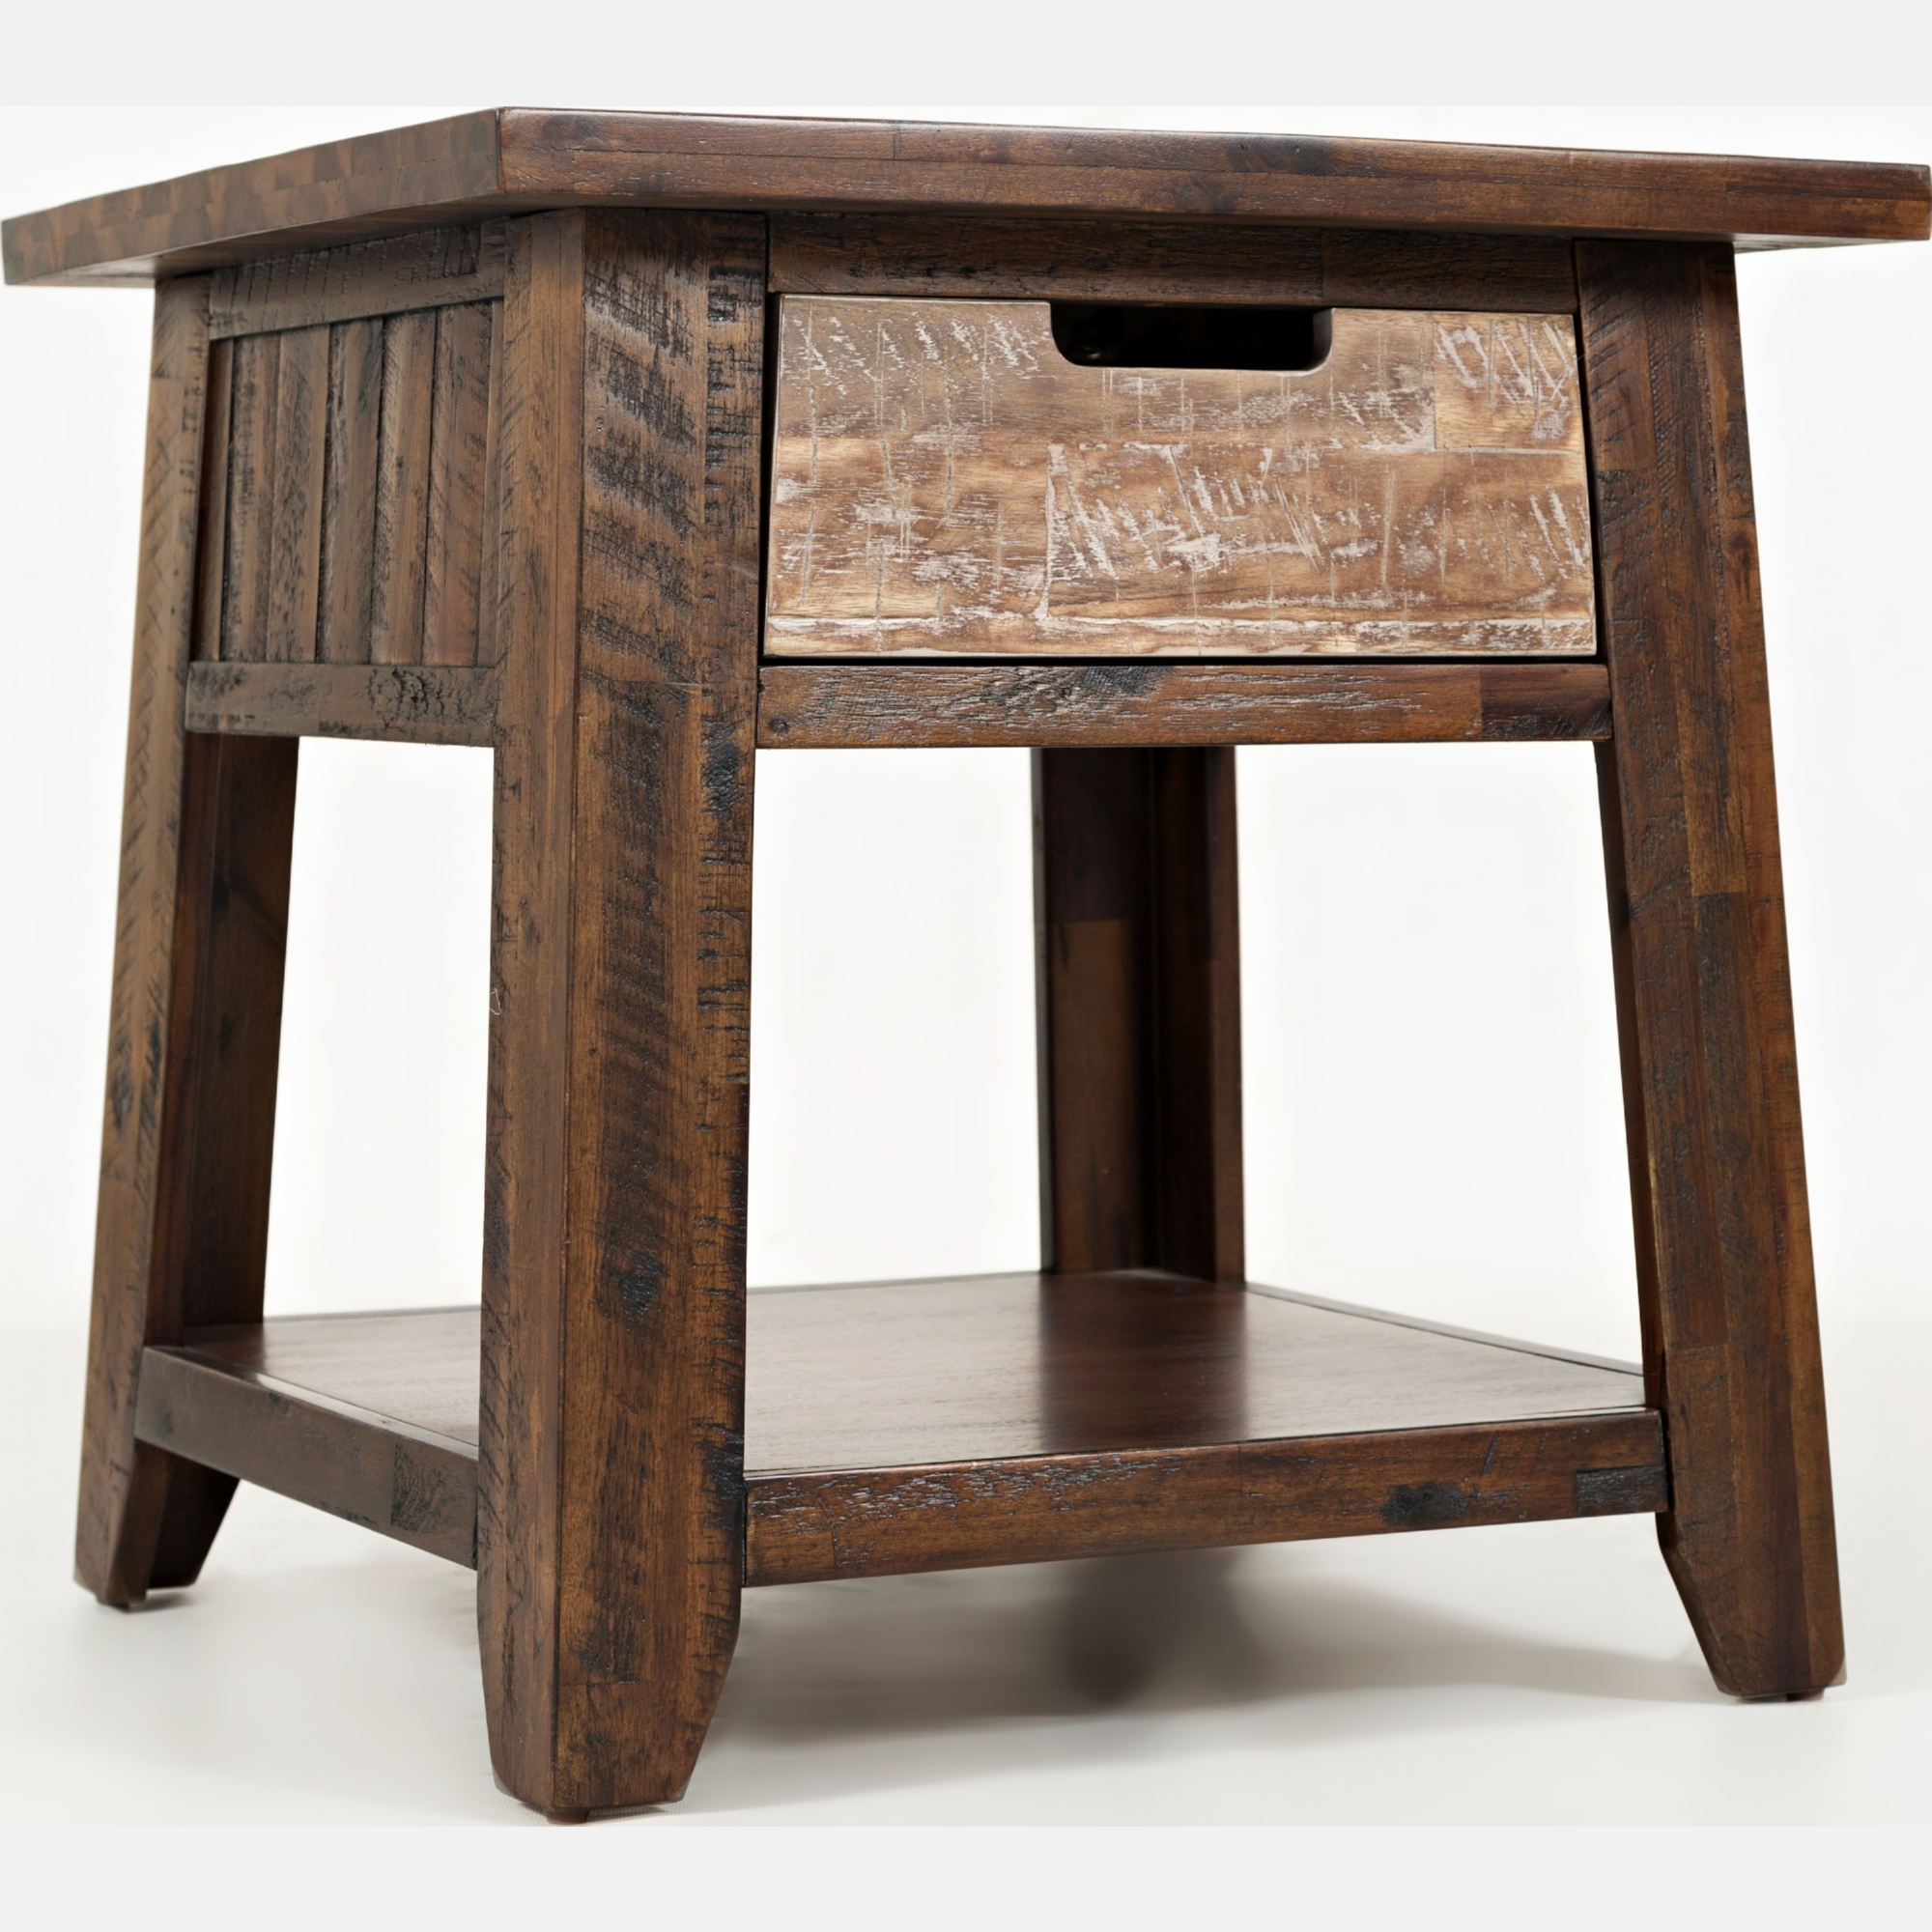 End table with drawer - Painted Canyon End Table W Drawer Shelf In Distressed Acacia